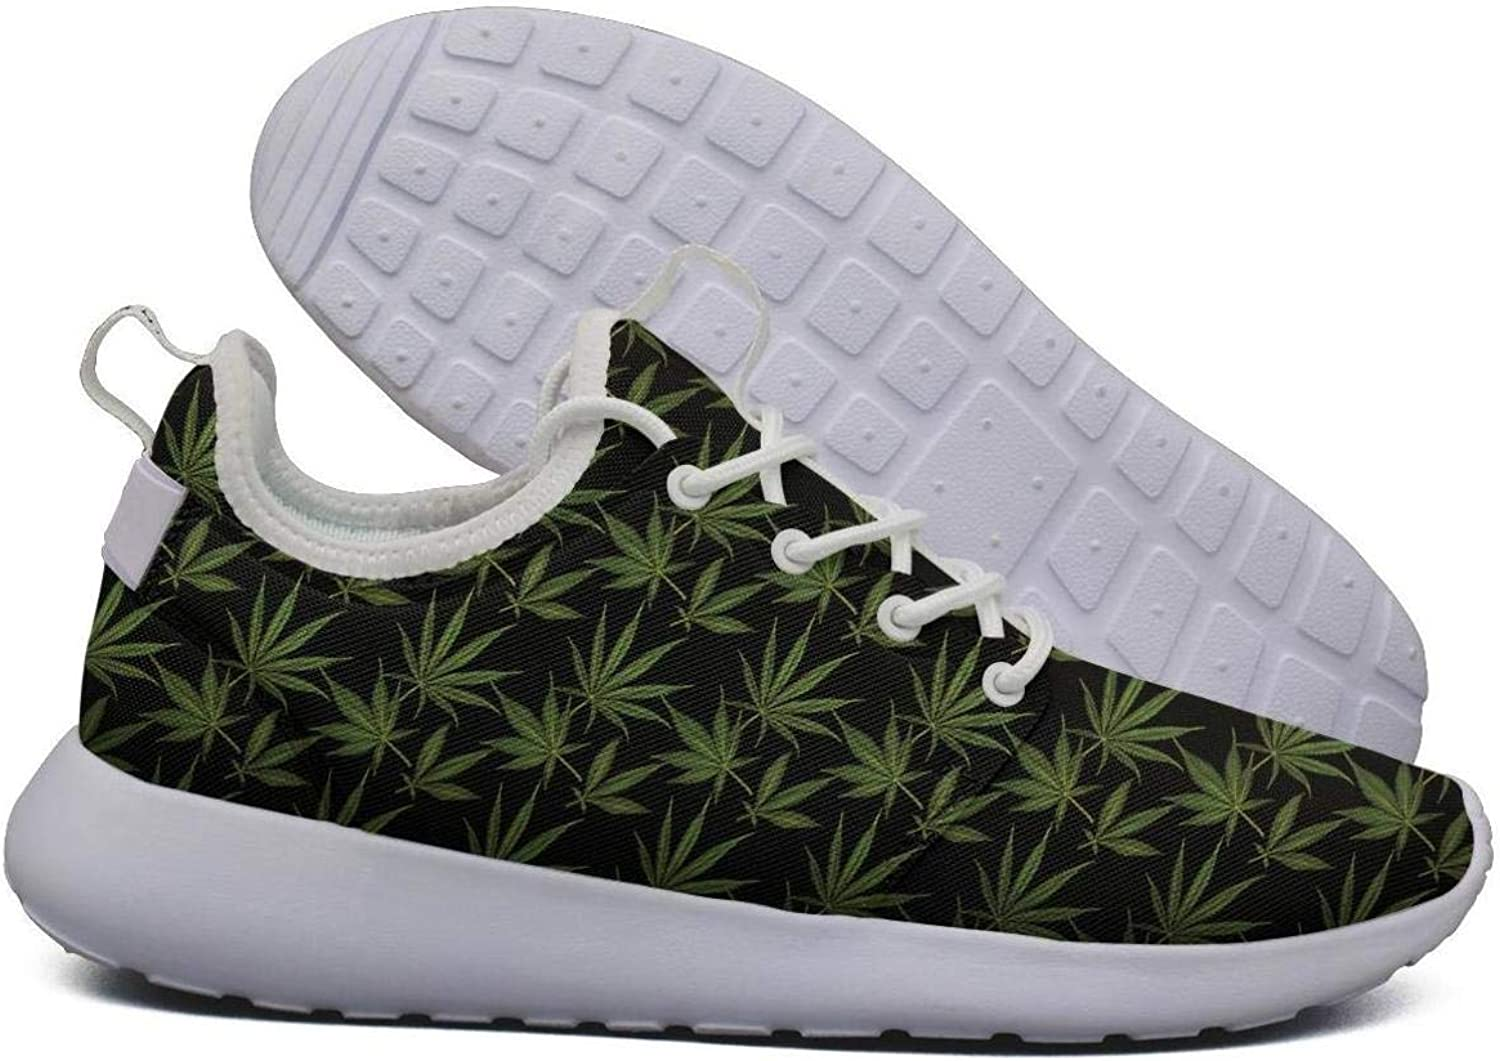 Hoohle Sports Womens Cannabis Leaf Flex Mesh Roshe 2 Lightweight Fashion Road Running shoes